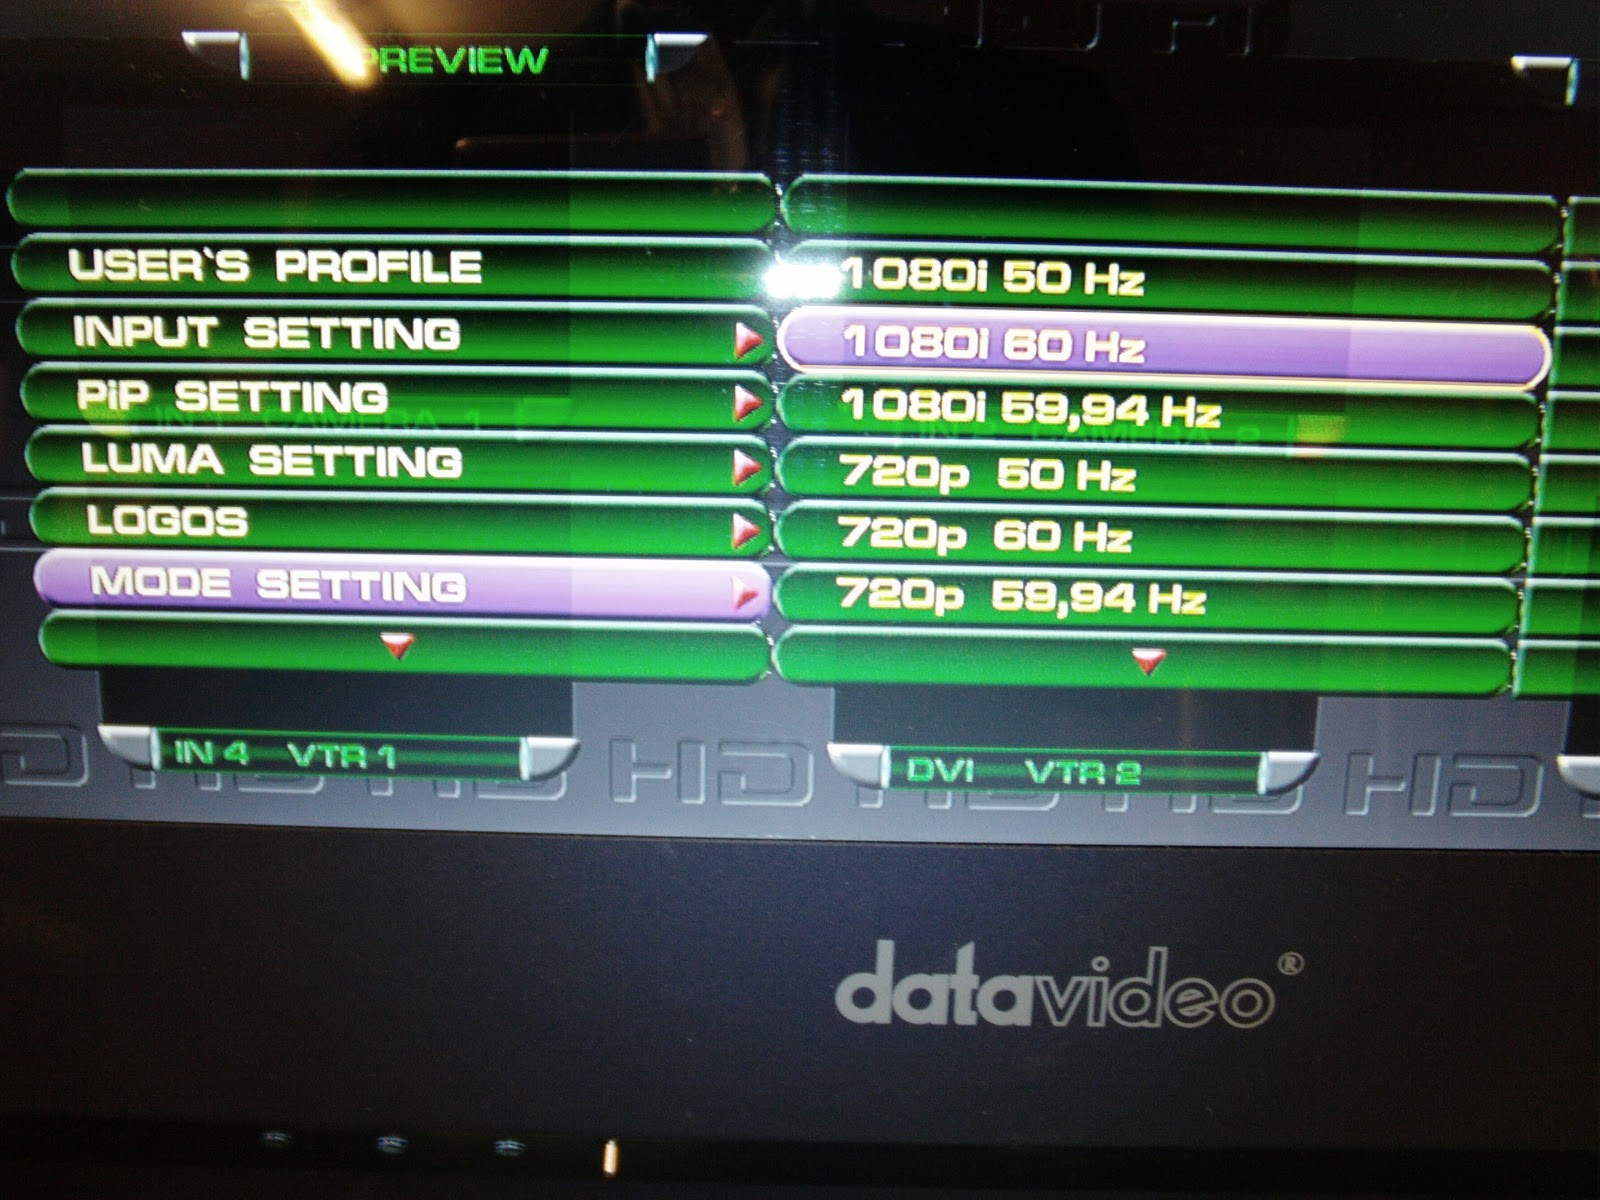 datavideo hs-2000 menu